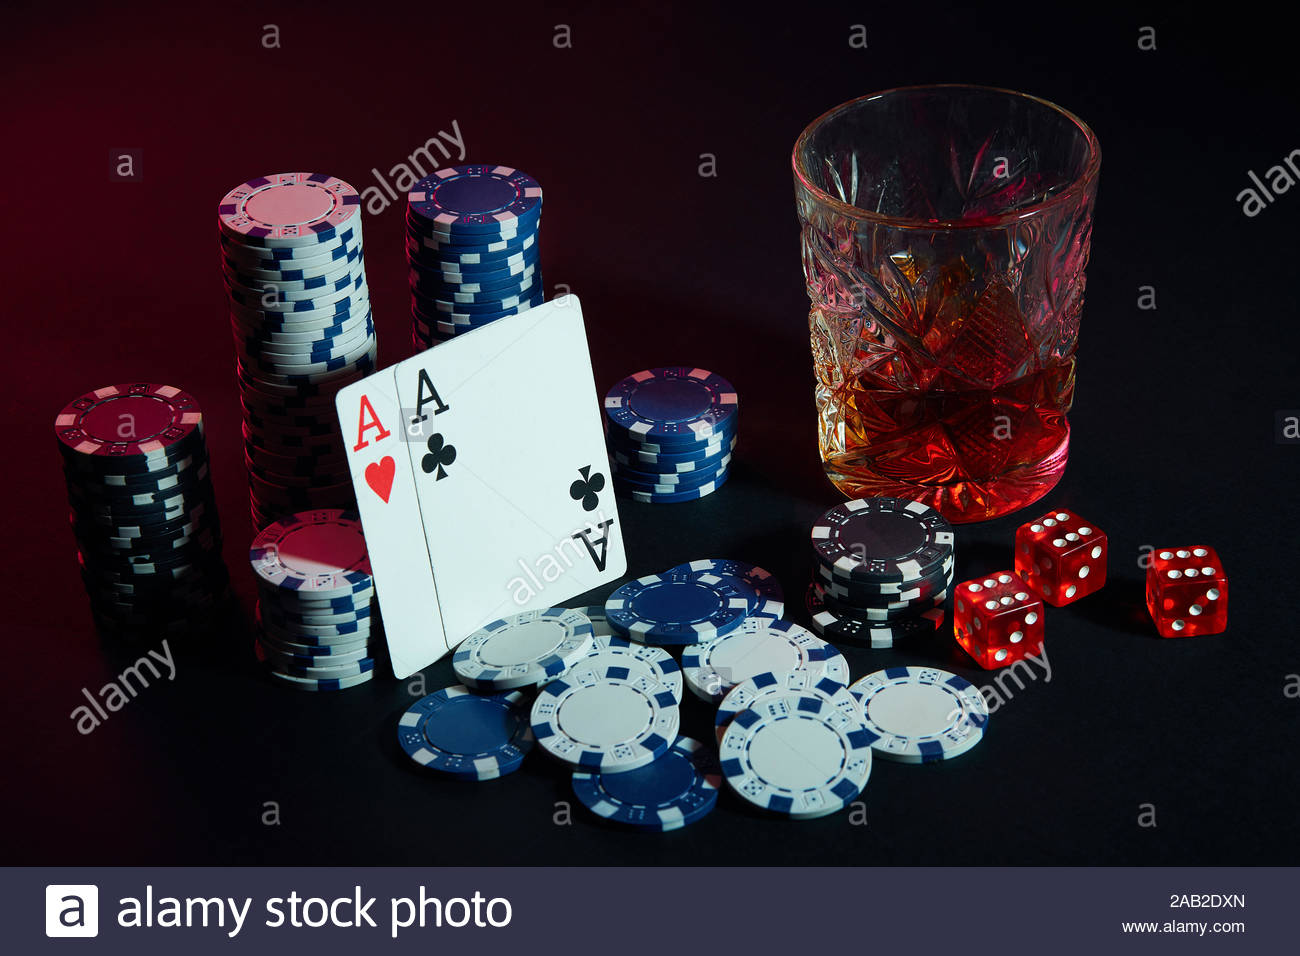 Online Gambling One Query You